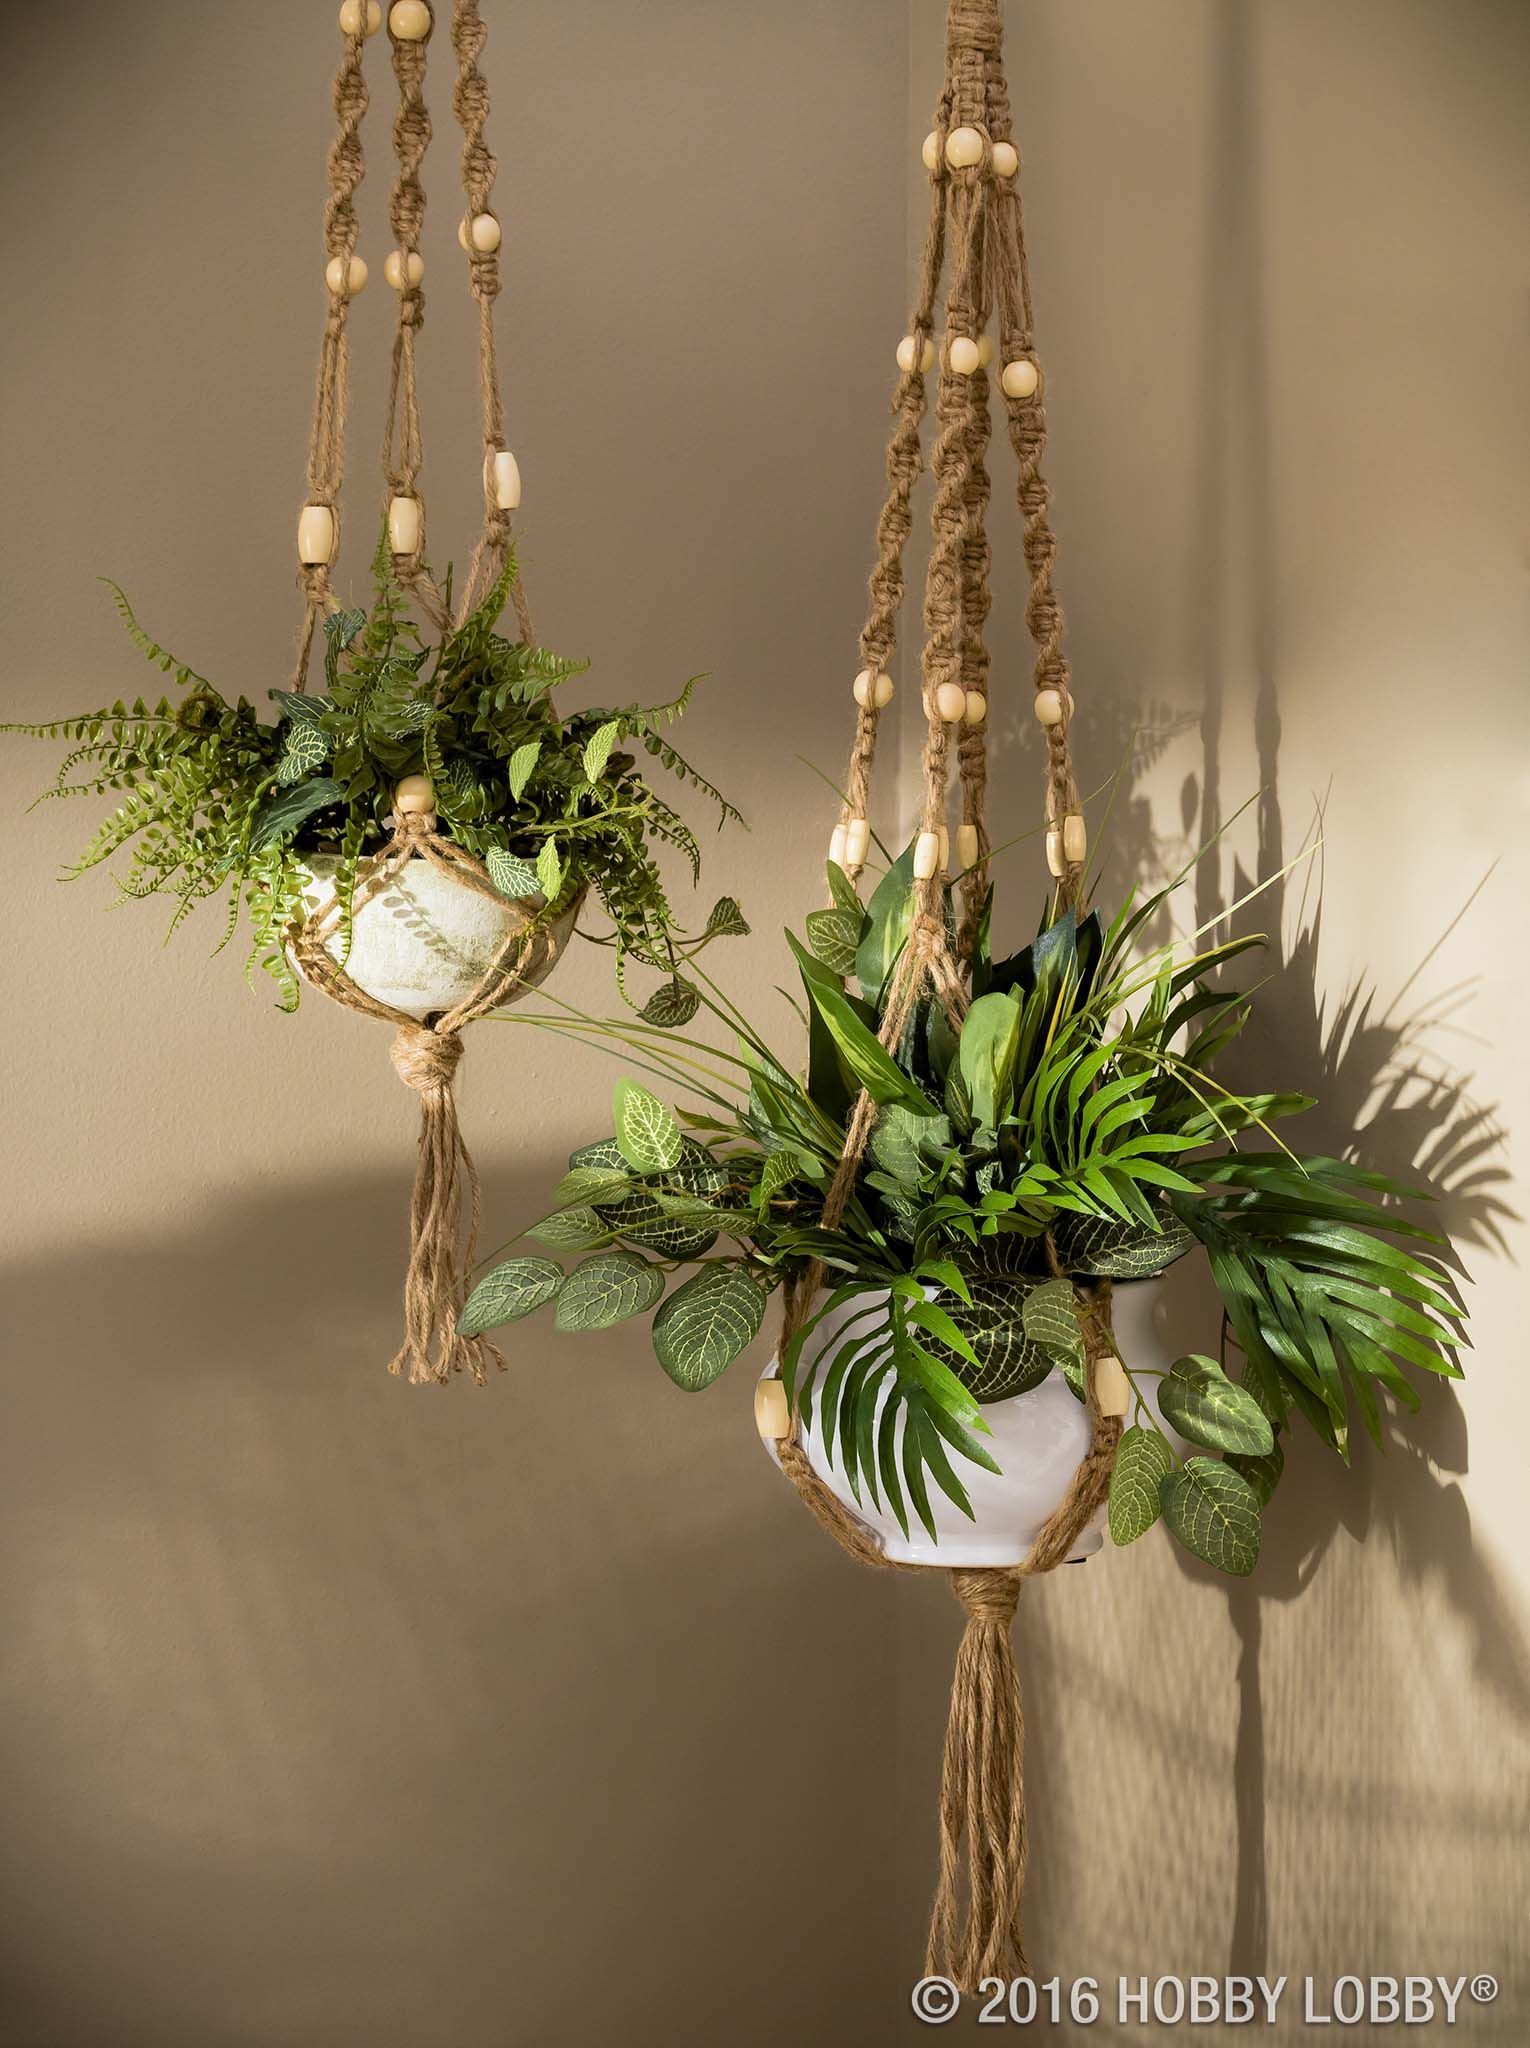 Add jute and beads to a plain planter for a boho twist on hanging planters!